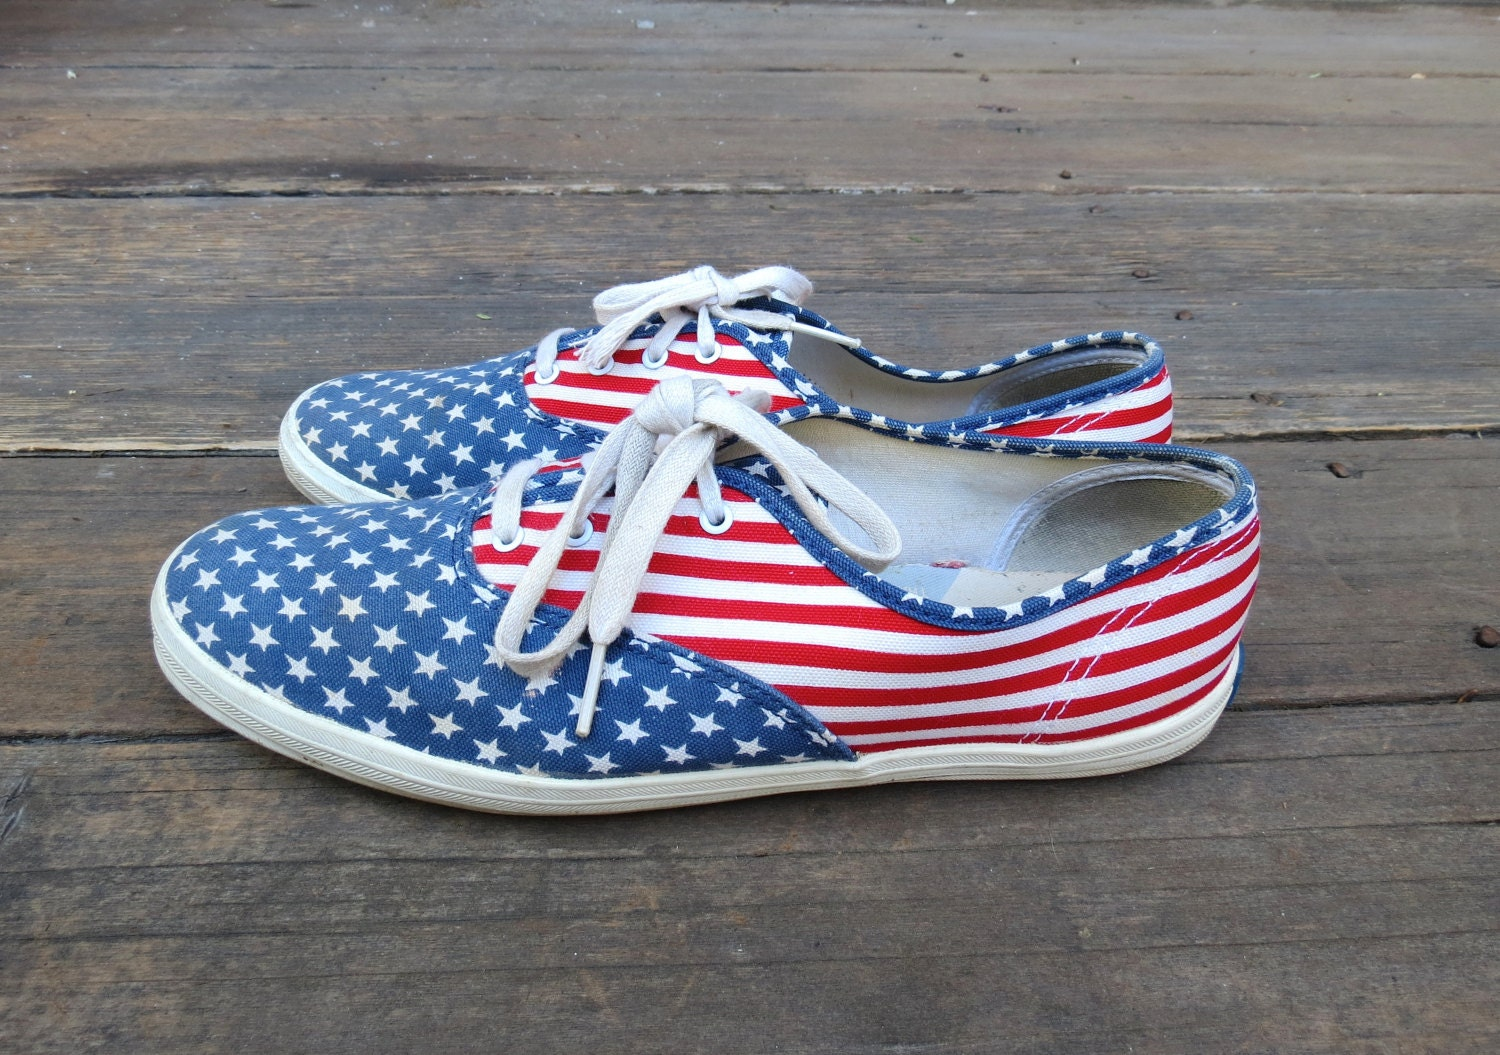 keds flag sneakers flats canvas tennis shoes size 10 rubber